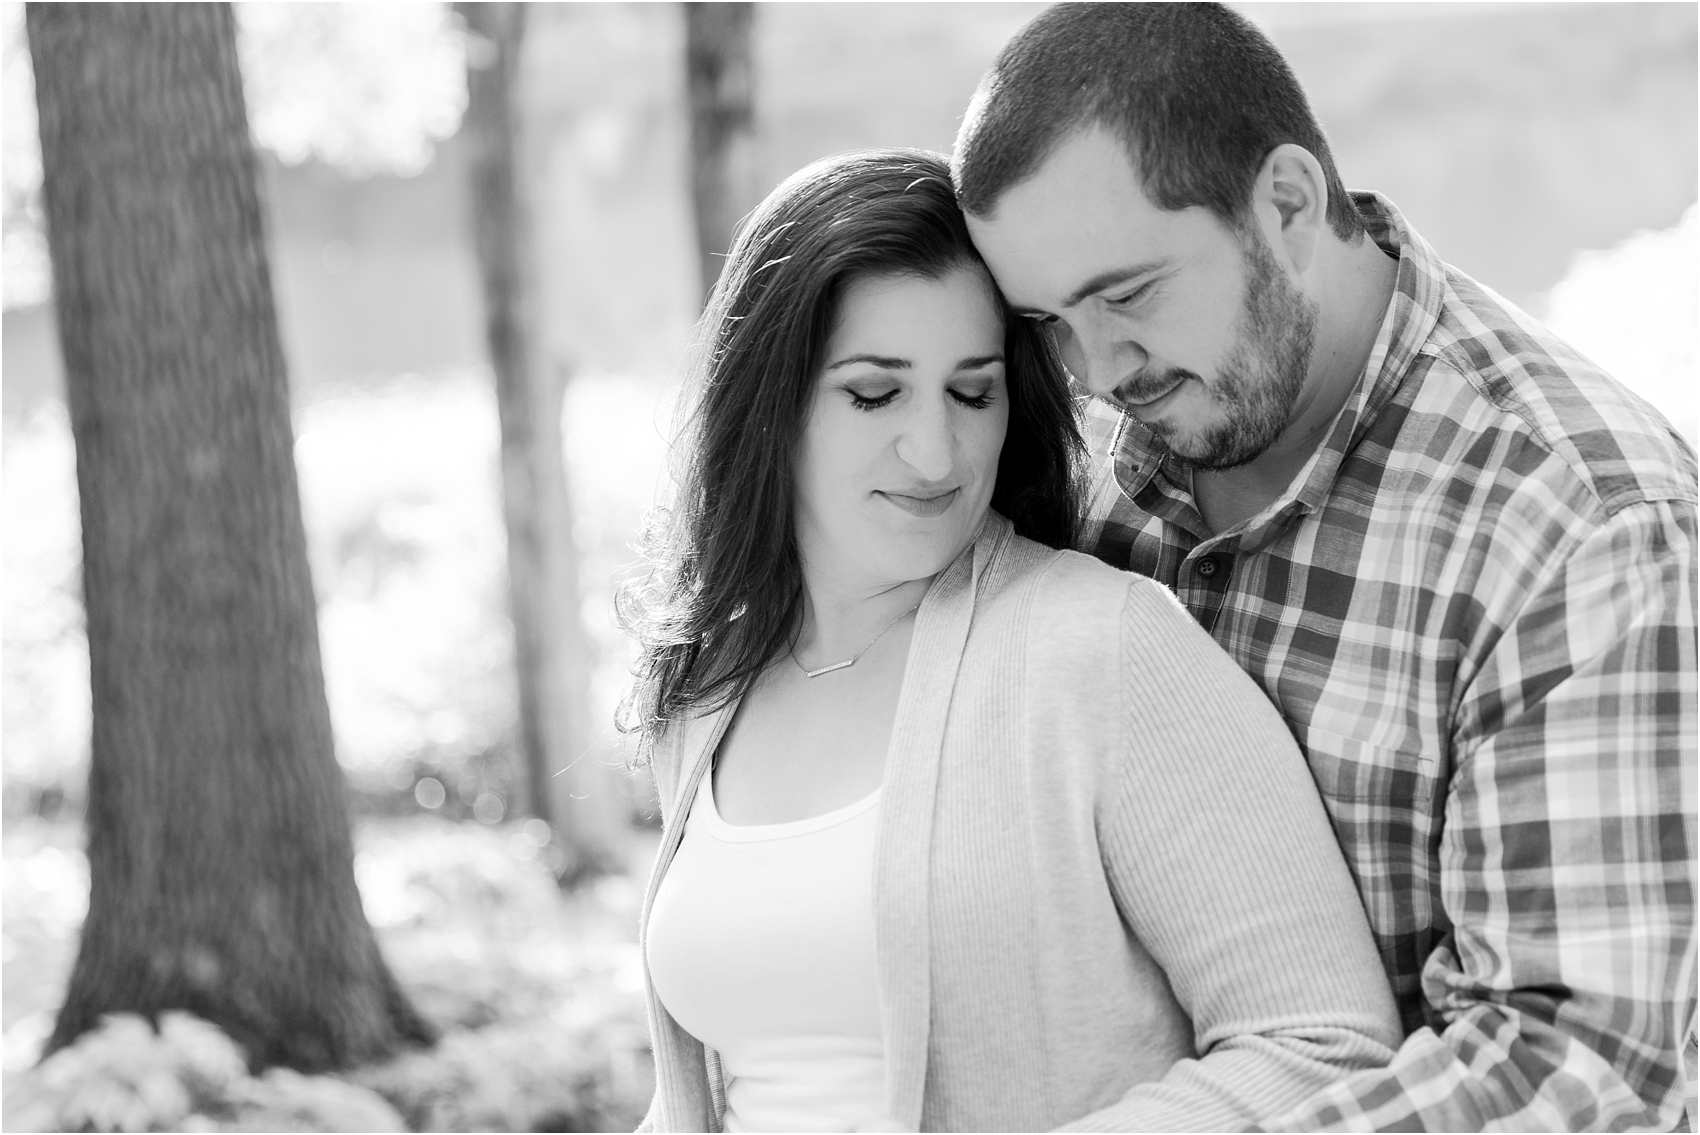 candid-romantic-summer-engagement-photos-at-hidden-lake-gardens-and-black-fire-winery-in-tipton-mi-by-courtney-carolyn-photography_0033.jpg